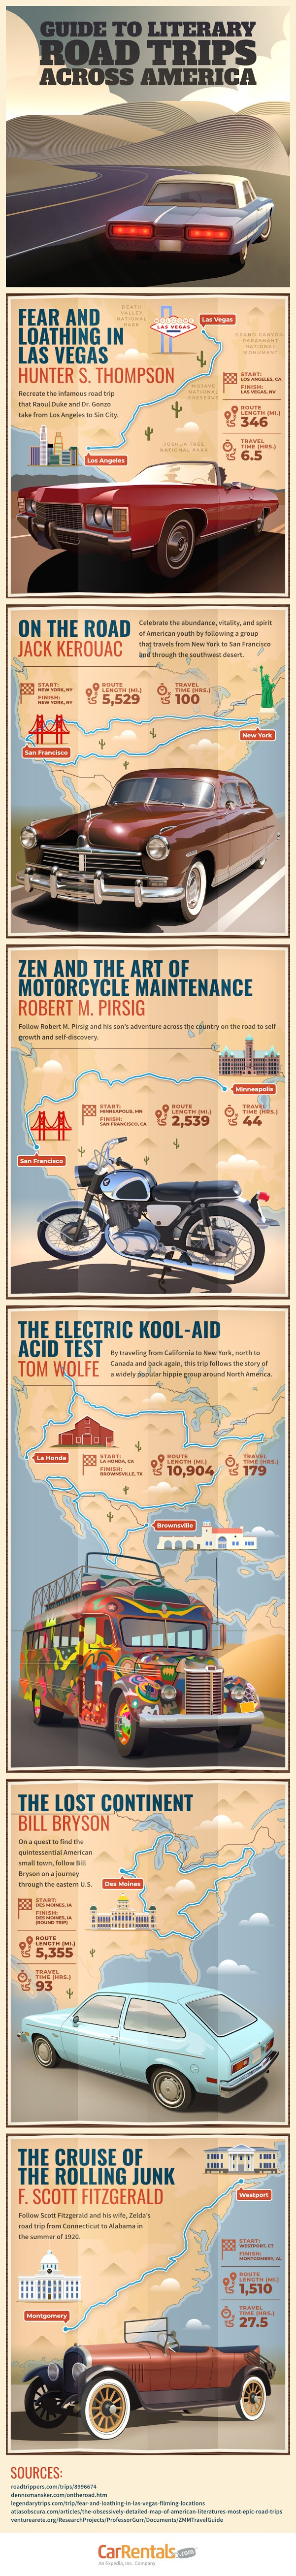 Your Guide to Literary Road Trips Across America #infographic #Road Trips in America #infographics #Literary Road Trips #Road Trips #Adventure